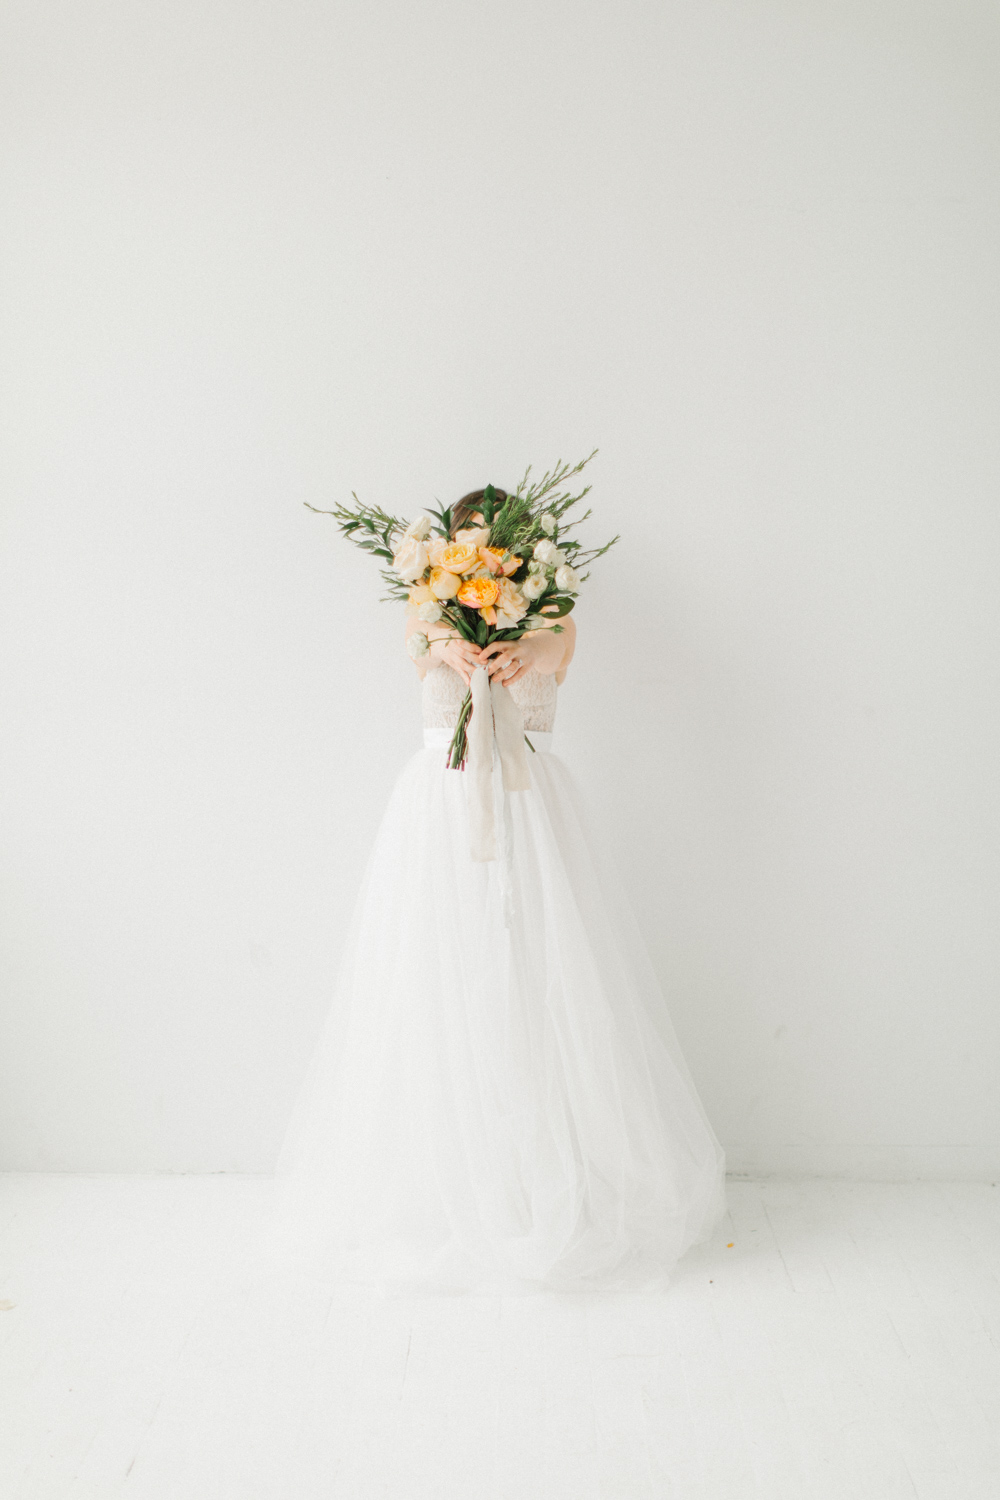 Seattle Fine Art Wedding Photographer | Seattle Downtown White Studio Bridal Session | Stunning Wedding Bouquet | Seattle Bride | Seattle Wedding | Photography Studio Space | Emma Rose Company Wedding Photography-24.jpg